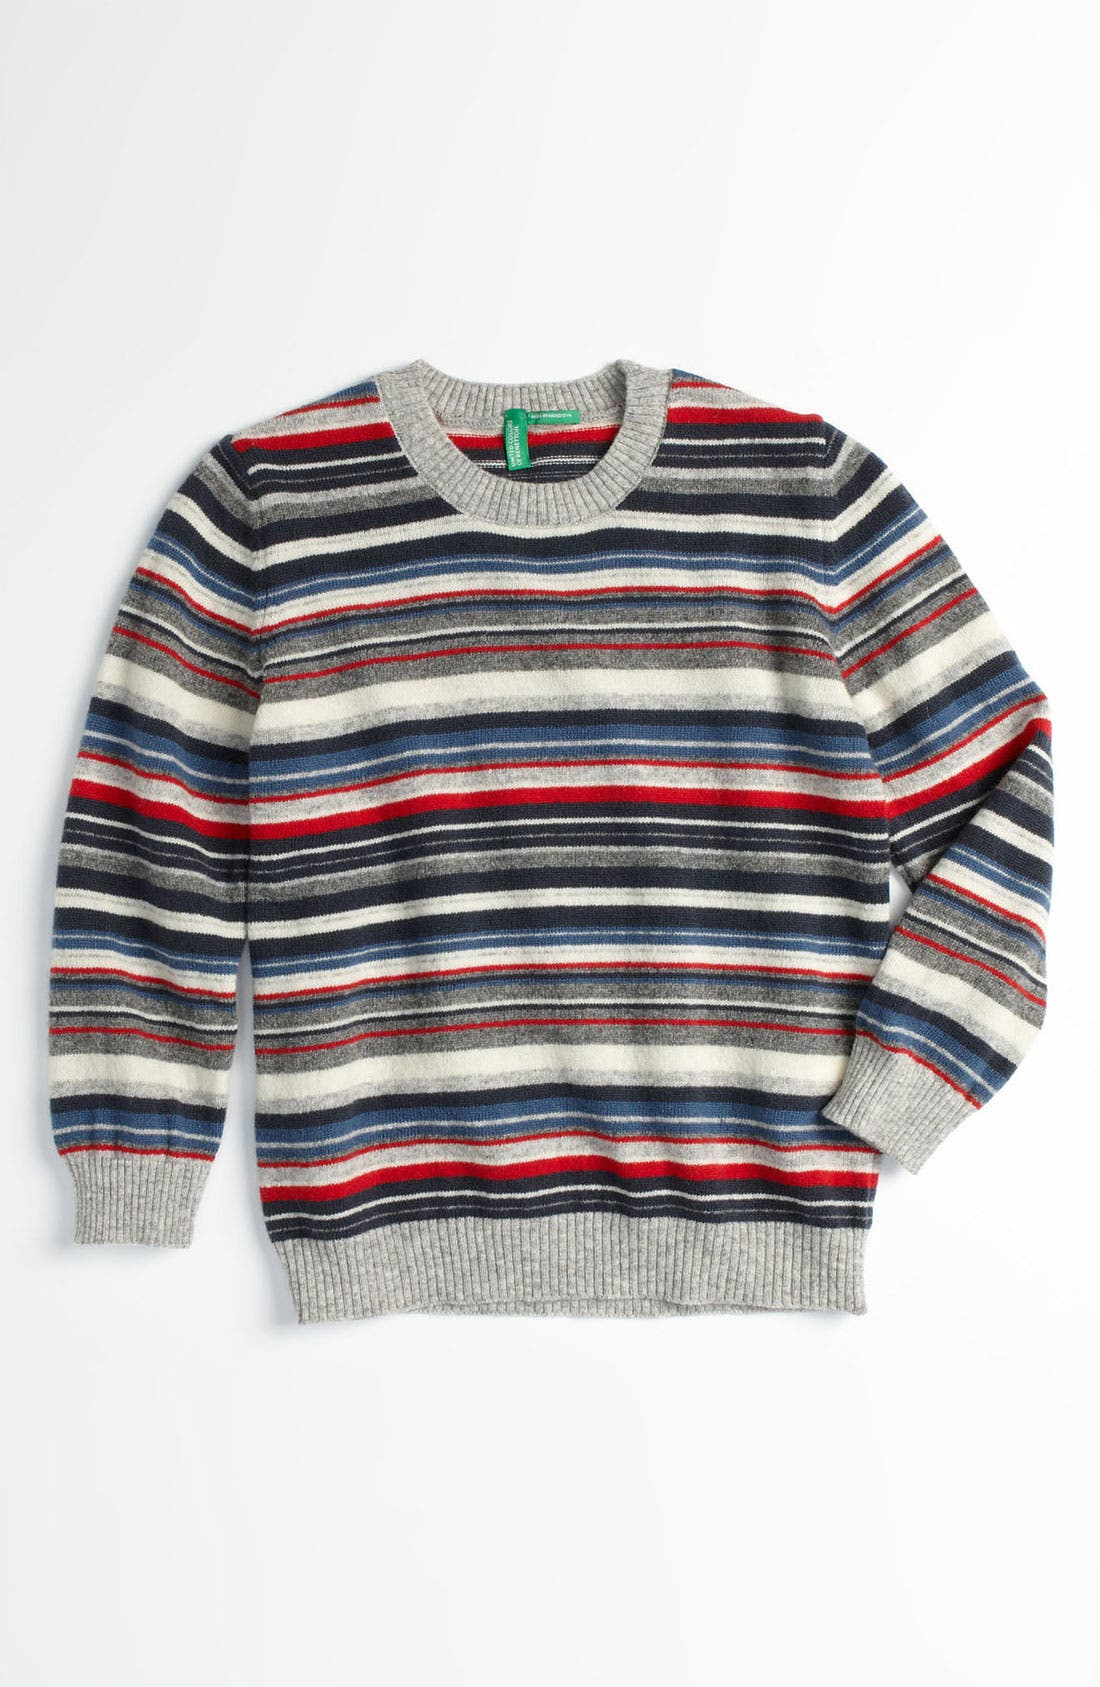 Alternate Image 1 Selected - United Colors of Benetton Kids Sweater (Toddler)